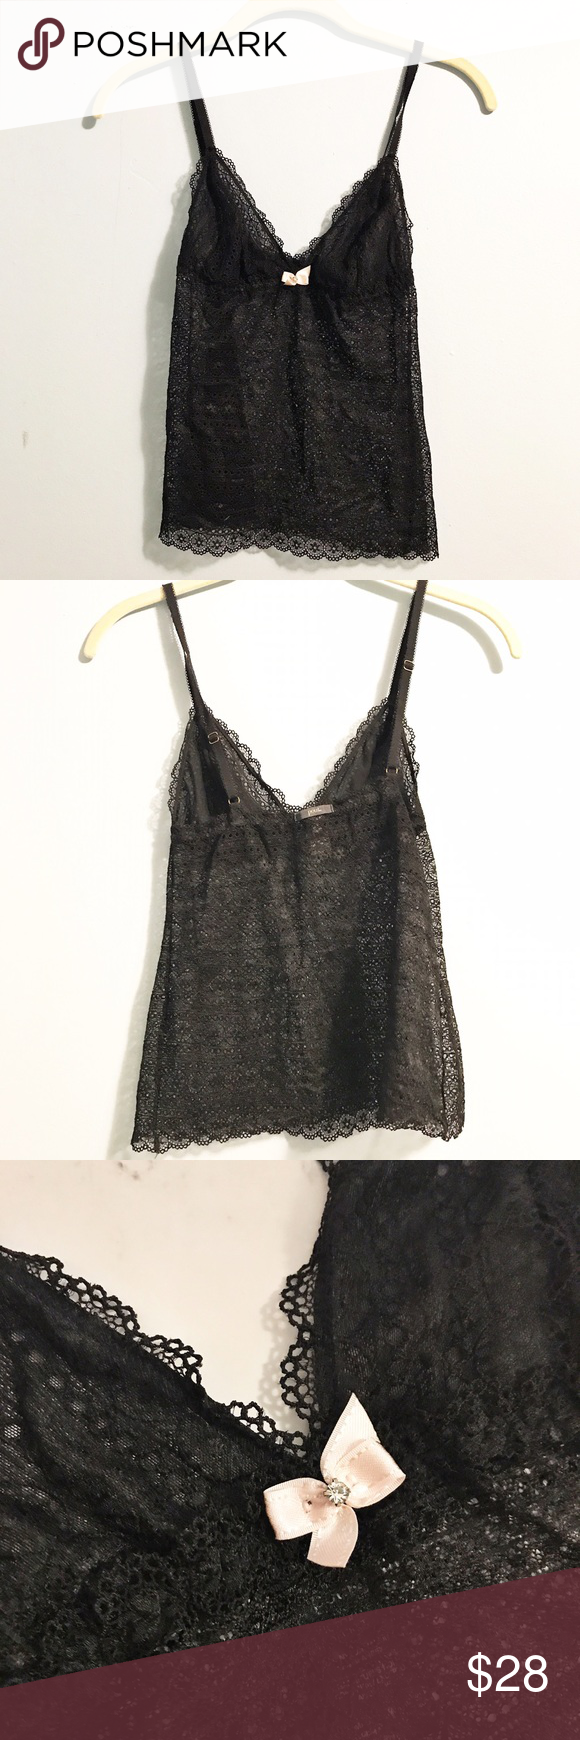 Pout by Victoria's Secret black lingerie tank top Pout by Victoria's Secret black lingerie tank top . Size small. Cute delicate pink bow with crystal. Fast shipping! Pretty sheer/ See through Victoria's Secret Intimates & Sleepwear